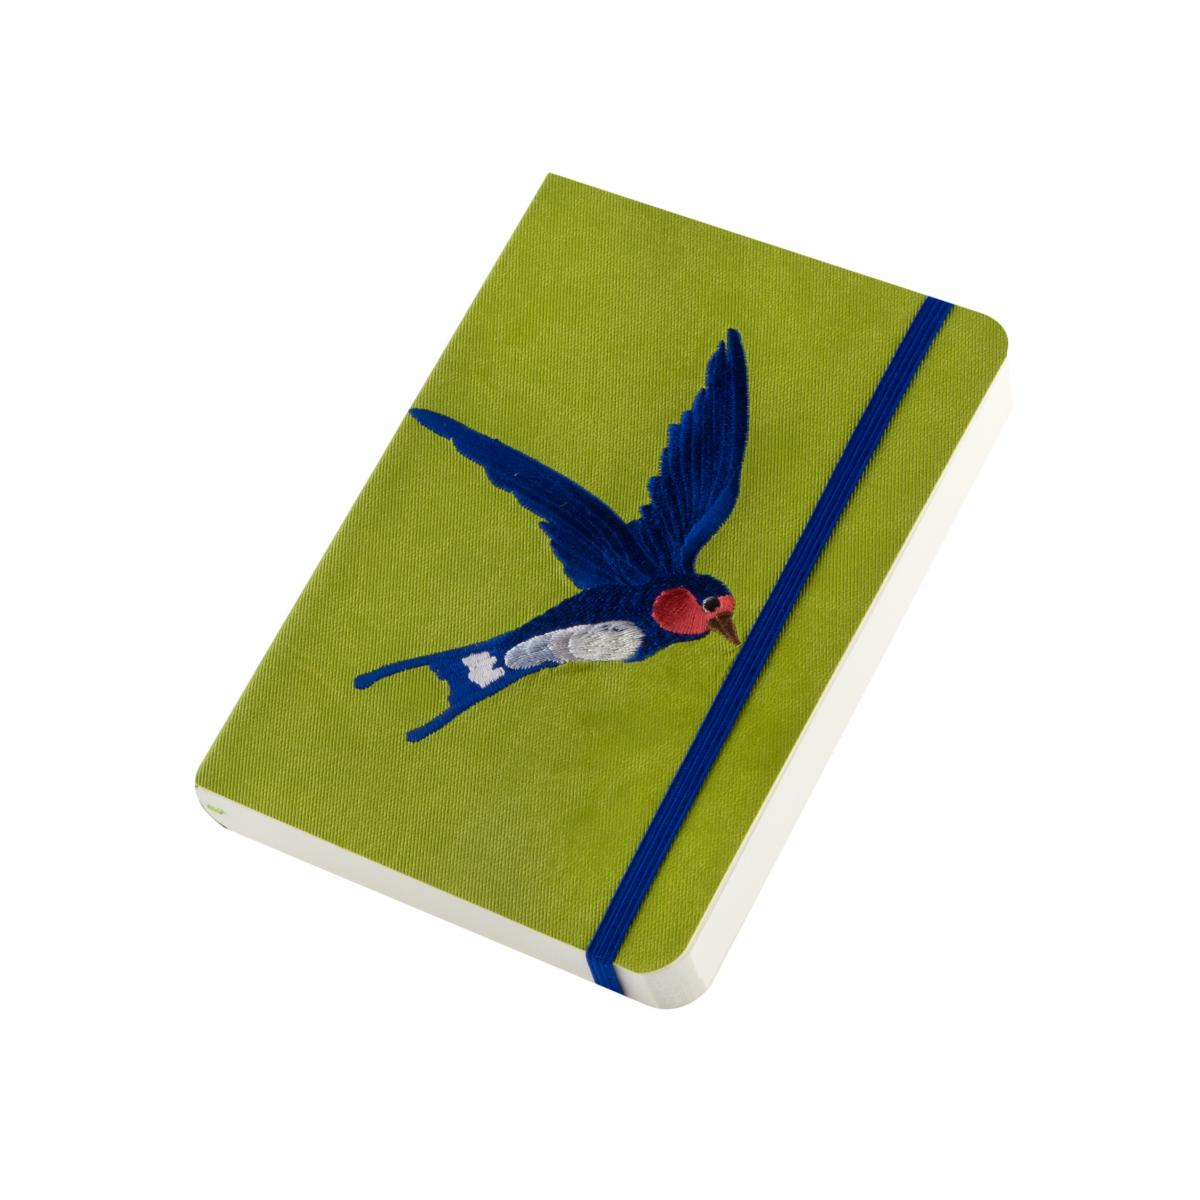 "Eco-leather notebook with embroidery ""Swallow"", green. Photo №2. 